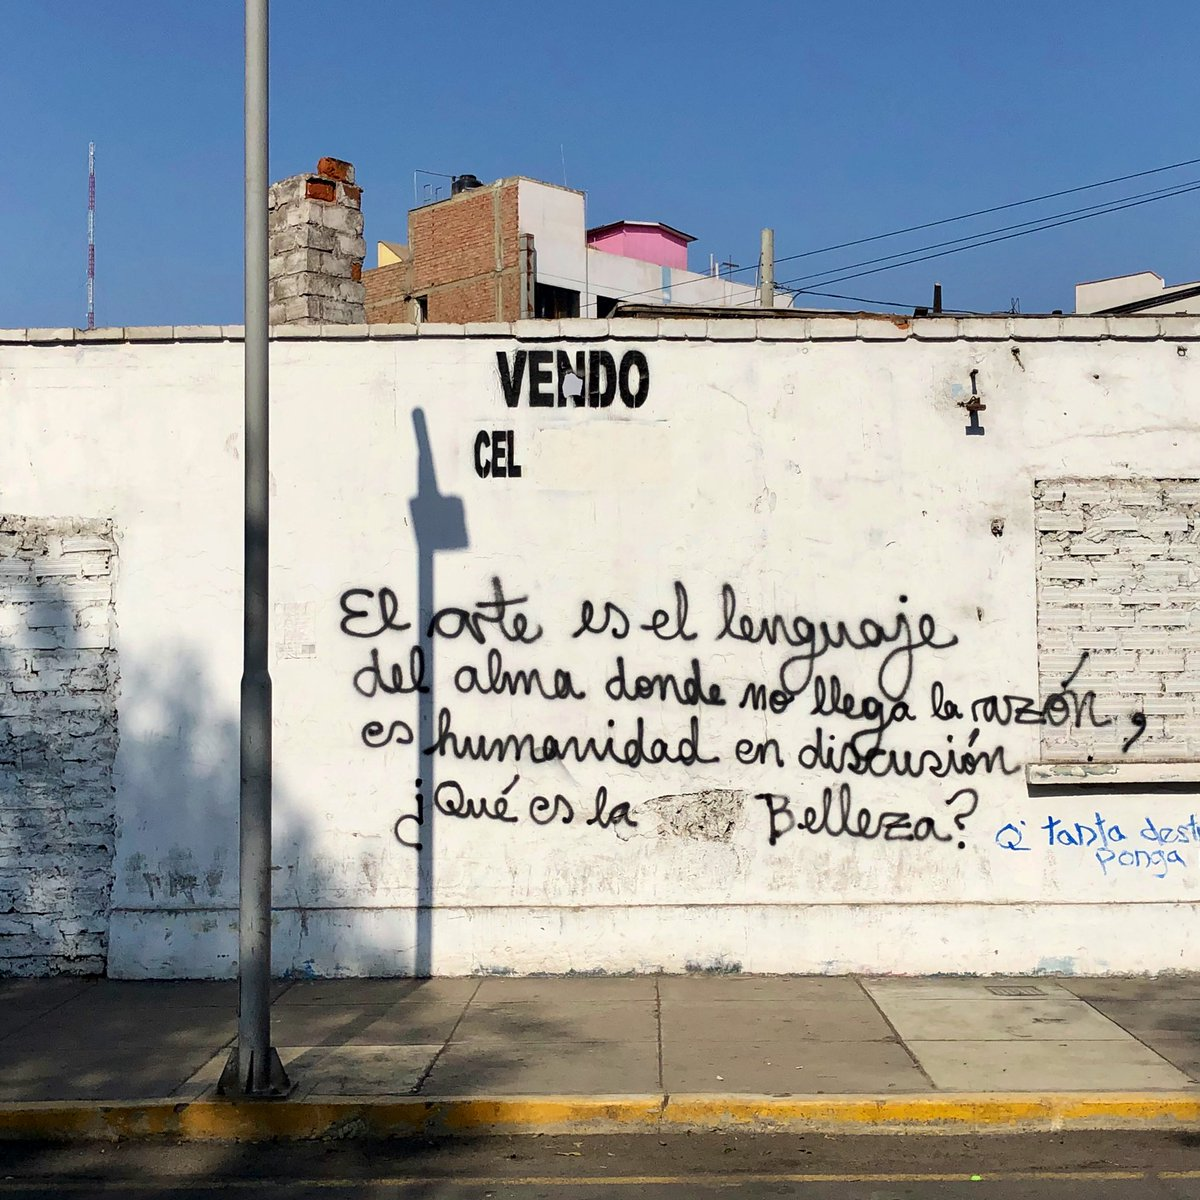 """""""Art is the language of the soul where there is no reason...it is humanity in discussion - what is beauty?""""  #StreetsSpeak #PublicCommons #Lima #Peru https://t.co/4DwBwQ800U"""